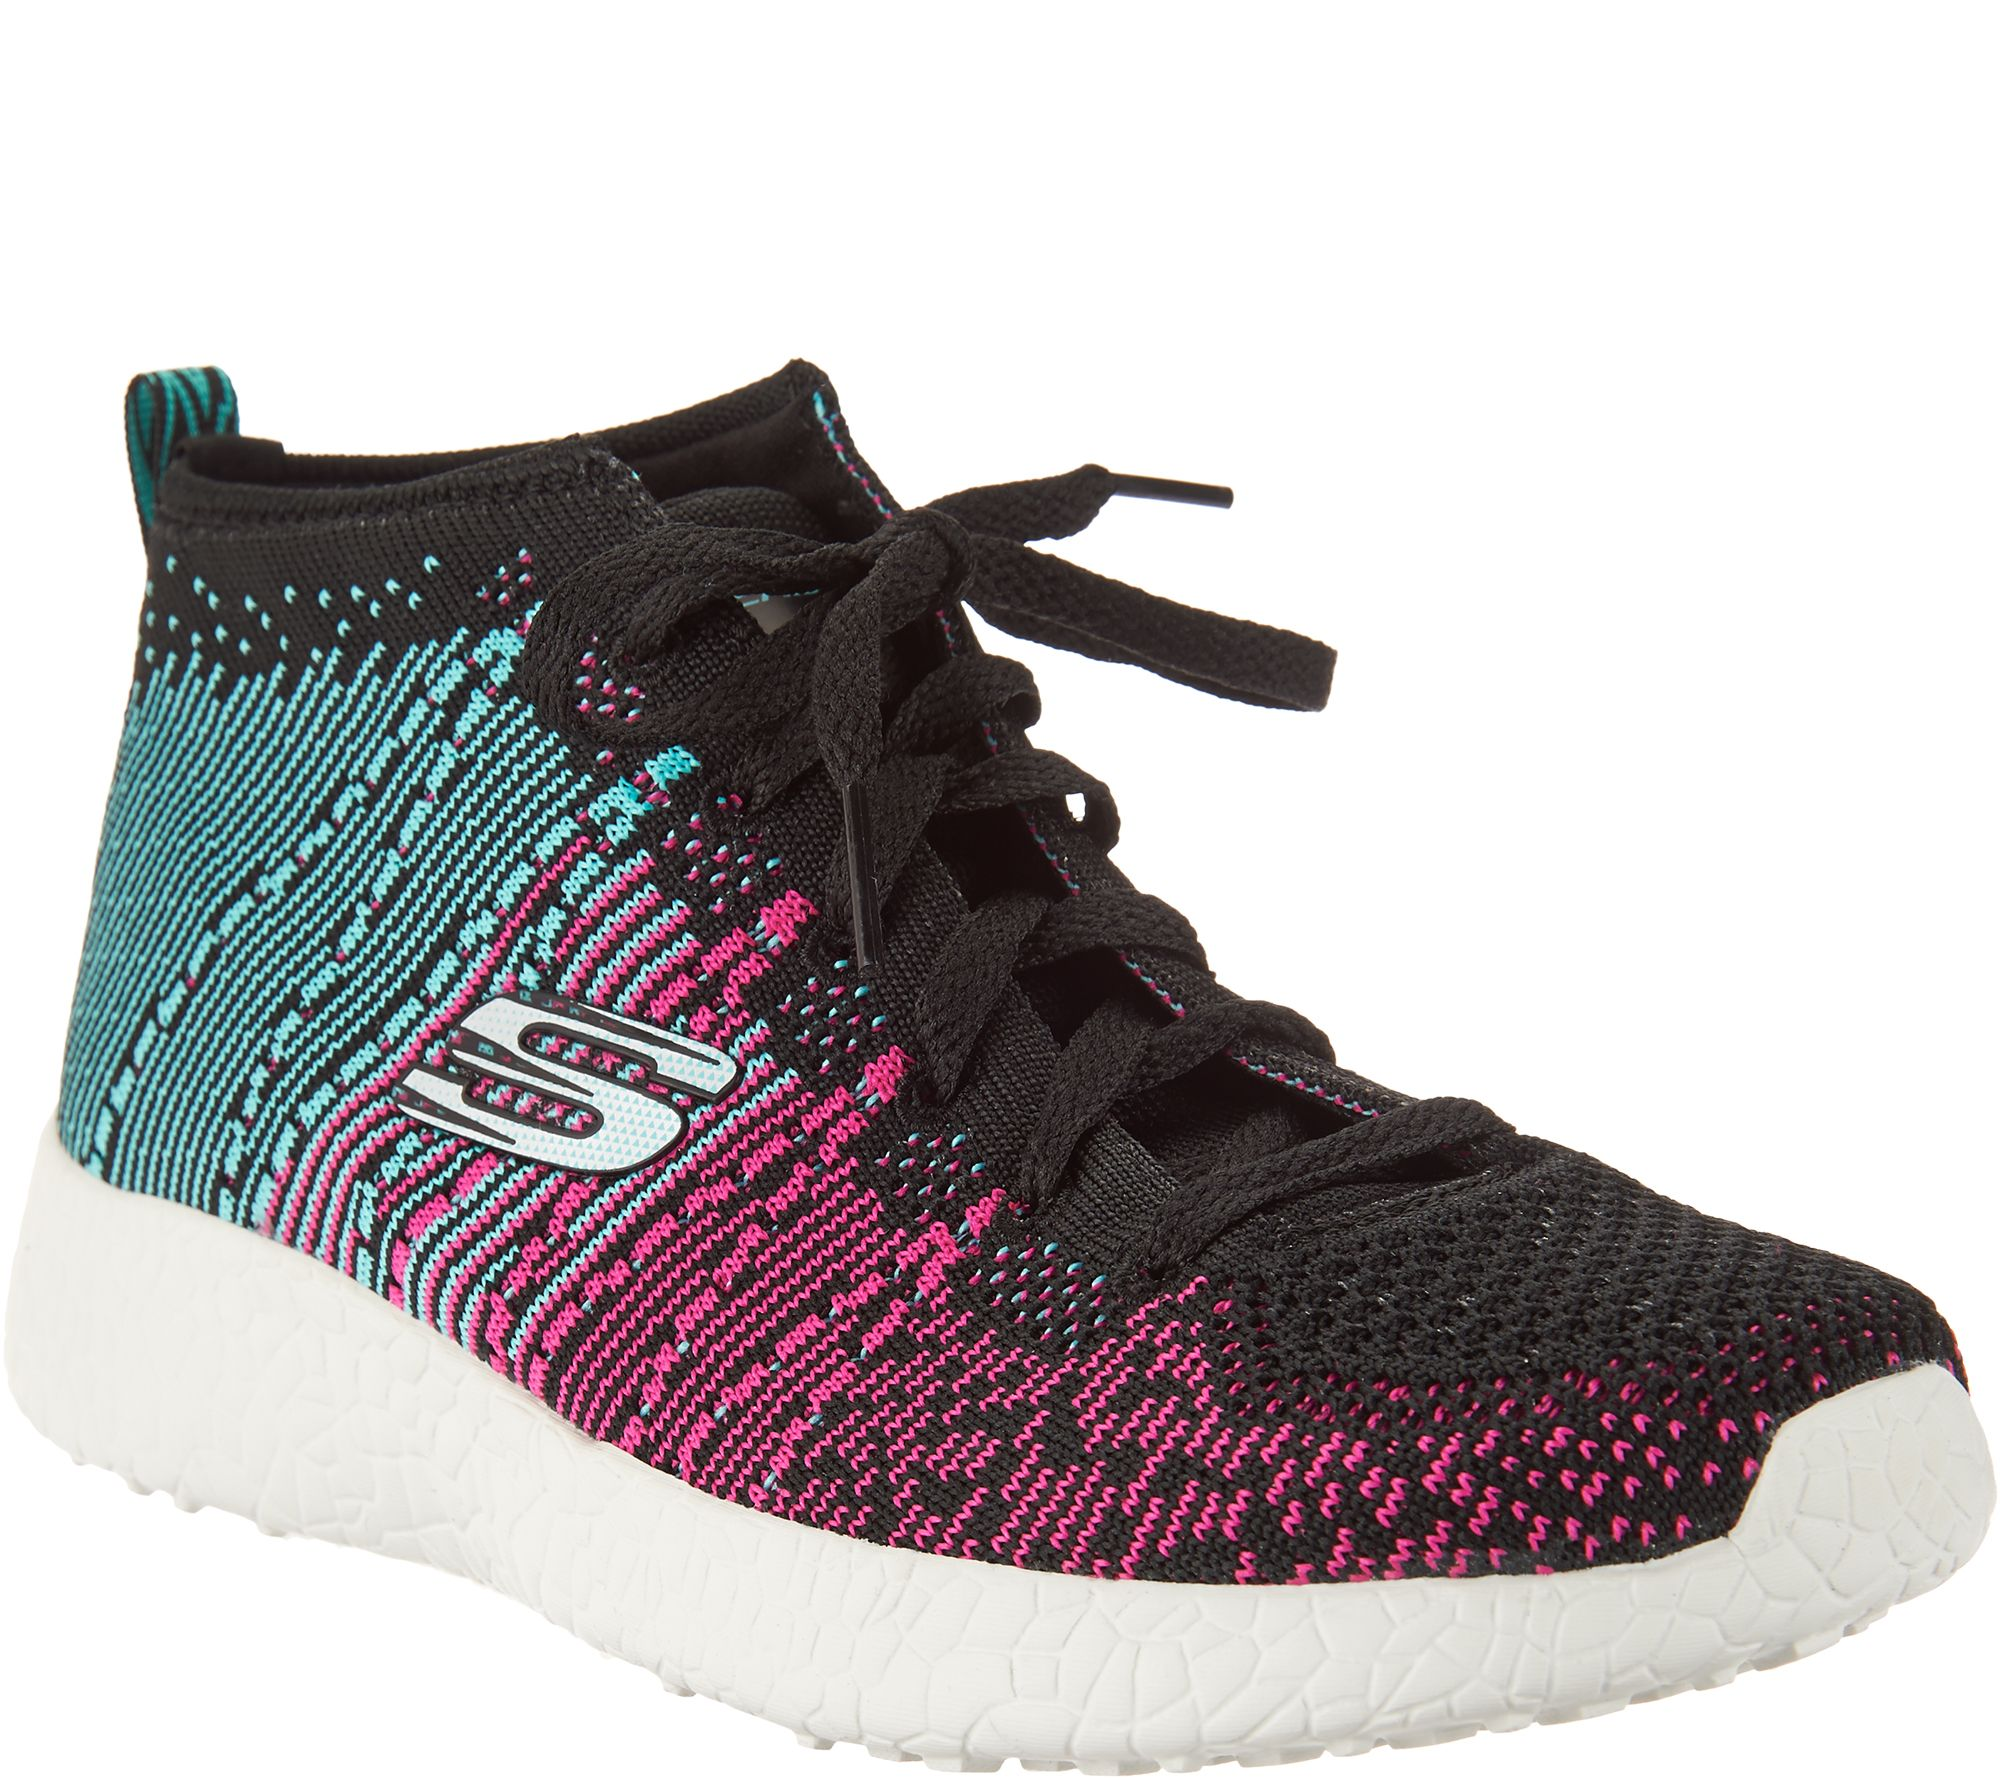 Skechers Abstract Flat Knit Sneakers